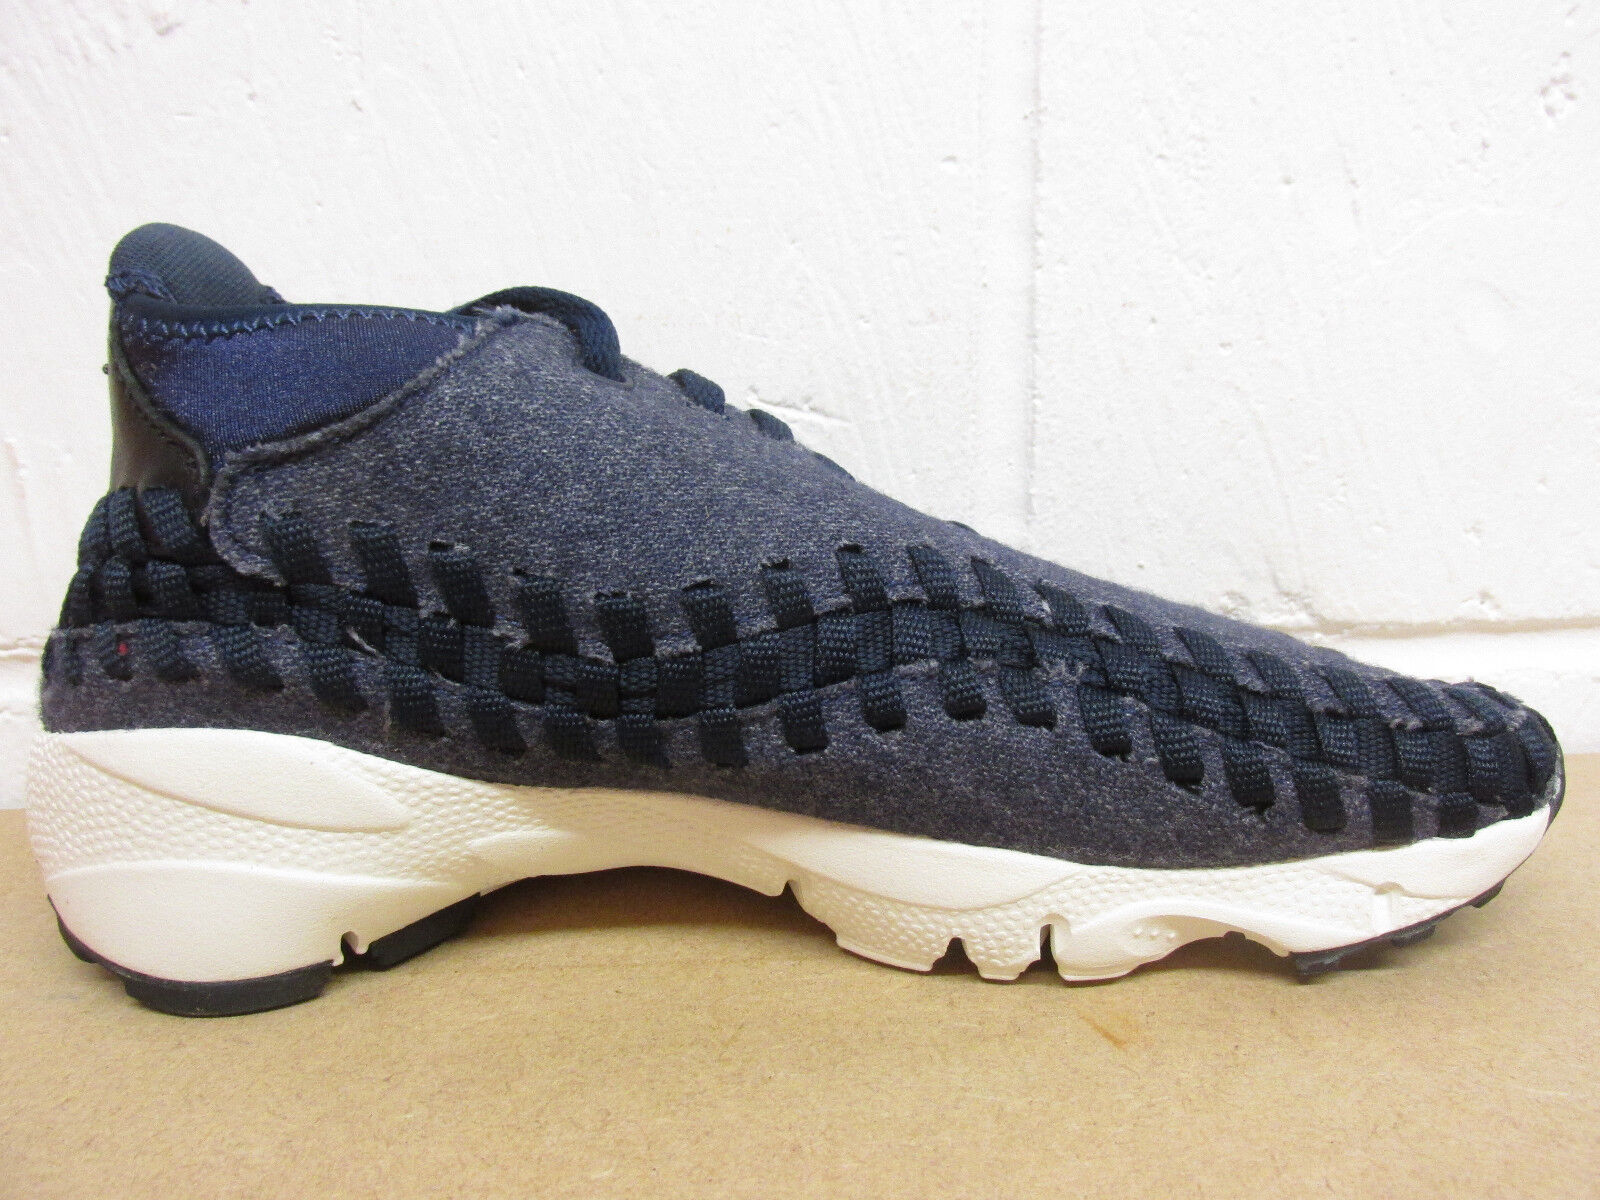 Nike air footscape footscape footscape intrecciato - chukka, se scarpe sportliche  Herren 857874 400 da 3d1d69